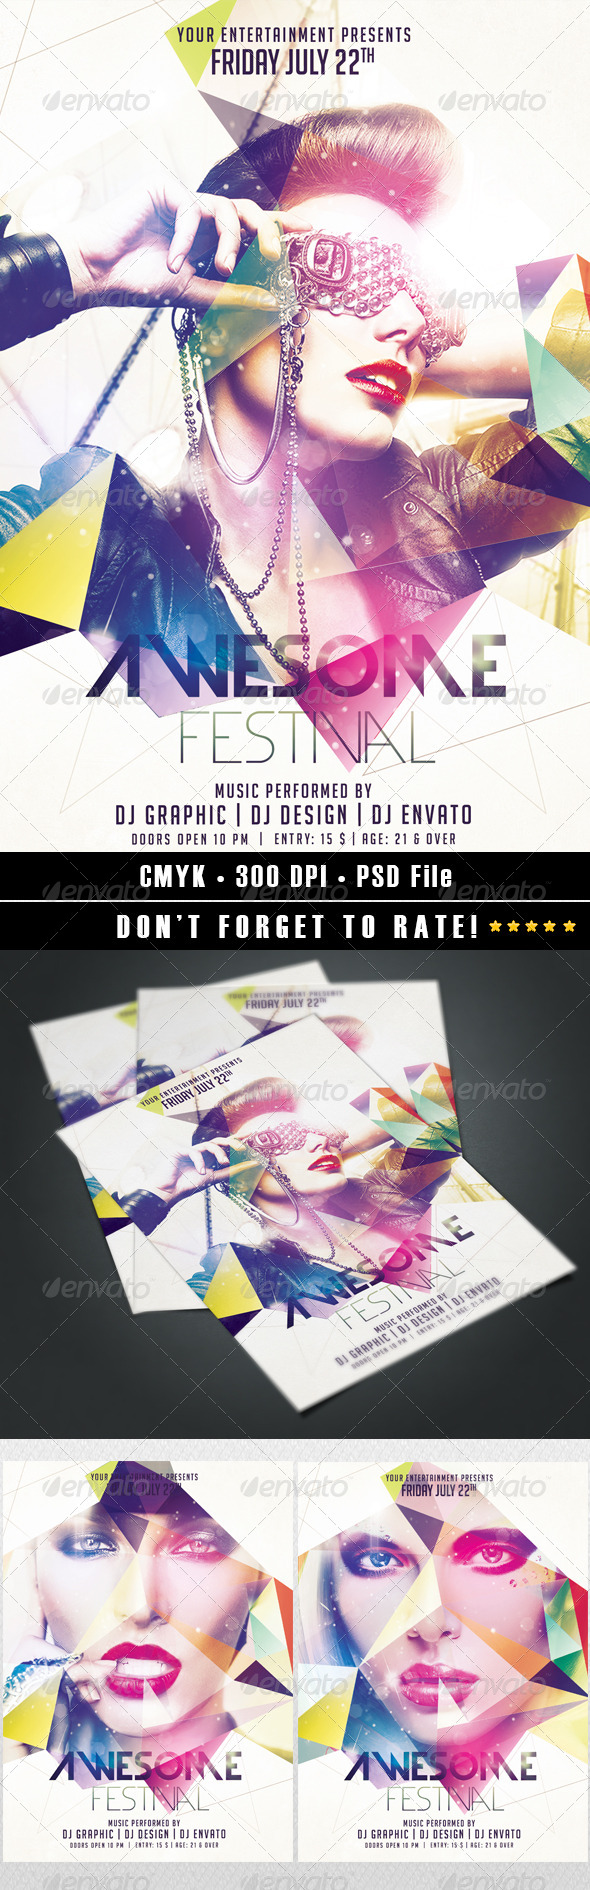 GraphicRiver Awesome Festival Flyer 8168298